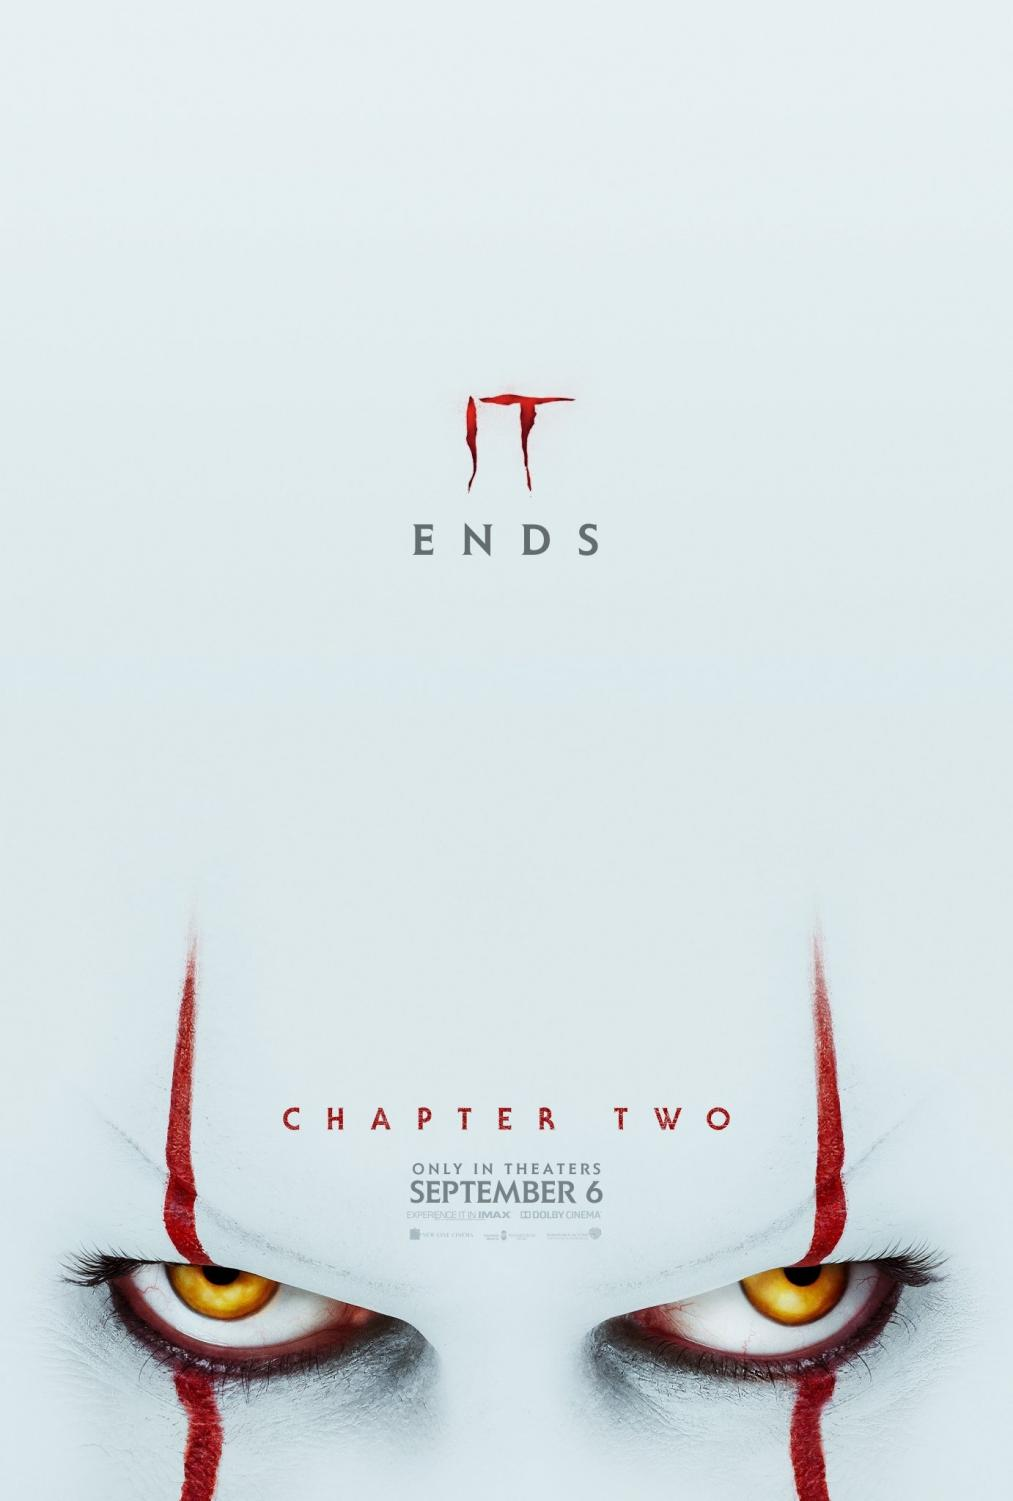 (Picture retrieved from IMDb.com) It Chapter 2 is much scarier than the first one but with the help of the great character development, it ends up being a really great horror movie.